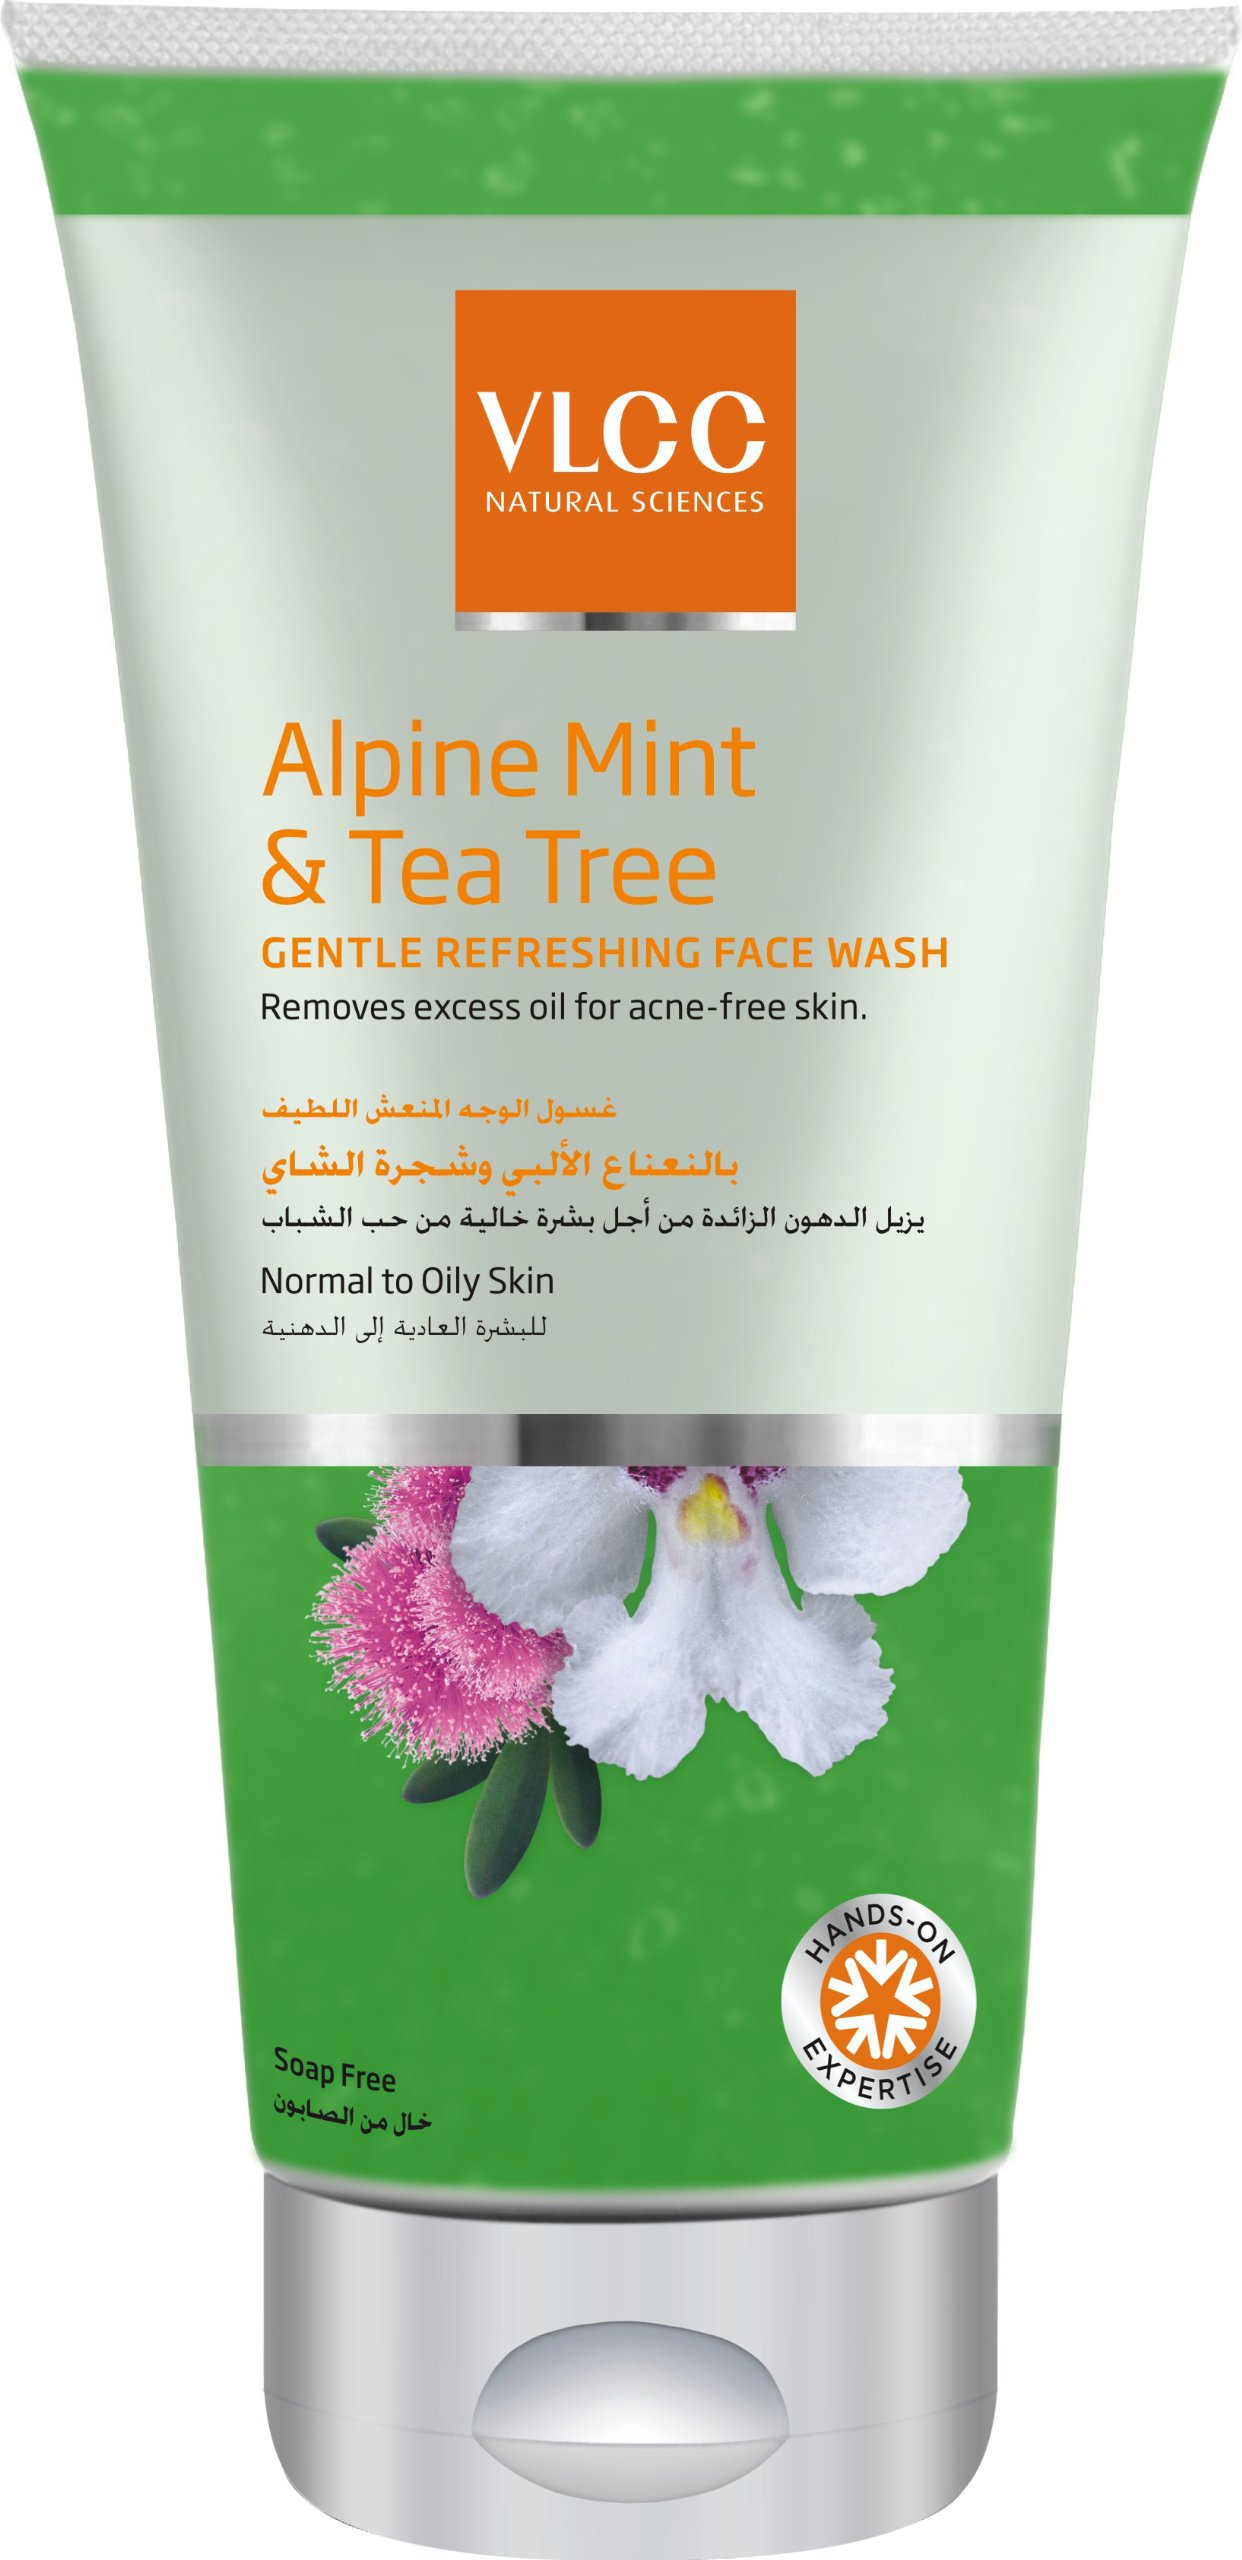 VLCC Alpine Mint And Tea Tree Gentle Refreshing Face Wash, 175ml product image